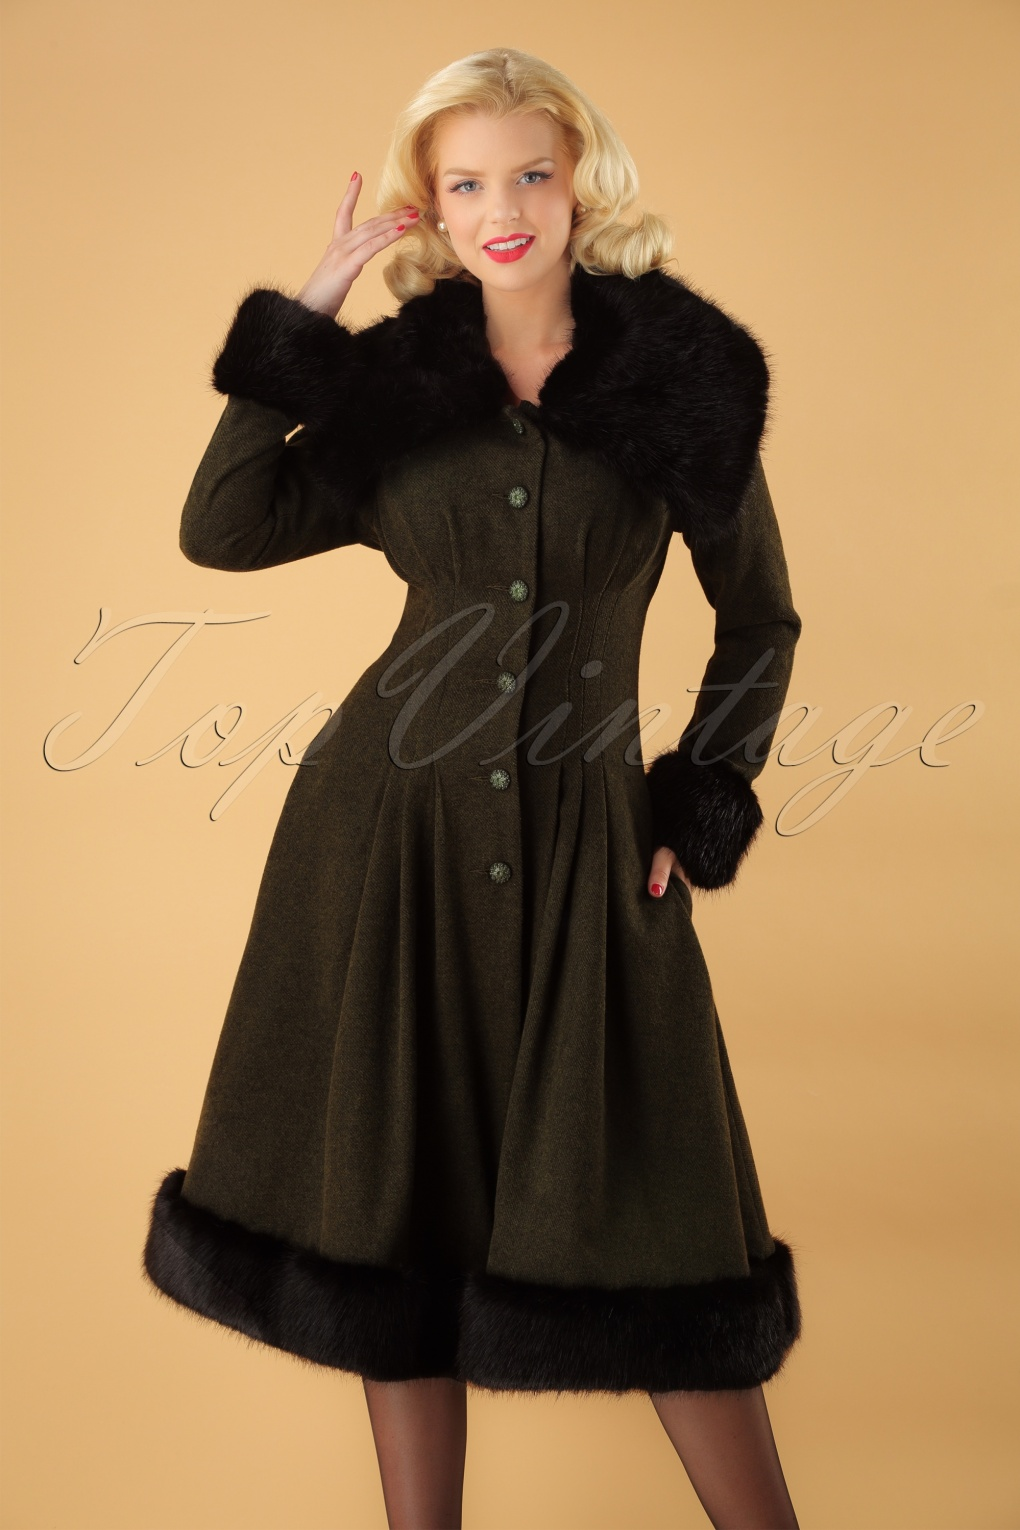 1930s Outfit Ideas for Women 30s Pearl Coat in Olive Green Wool £191.47 AT vintagedancer.com